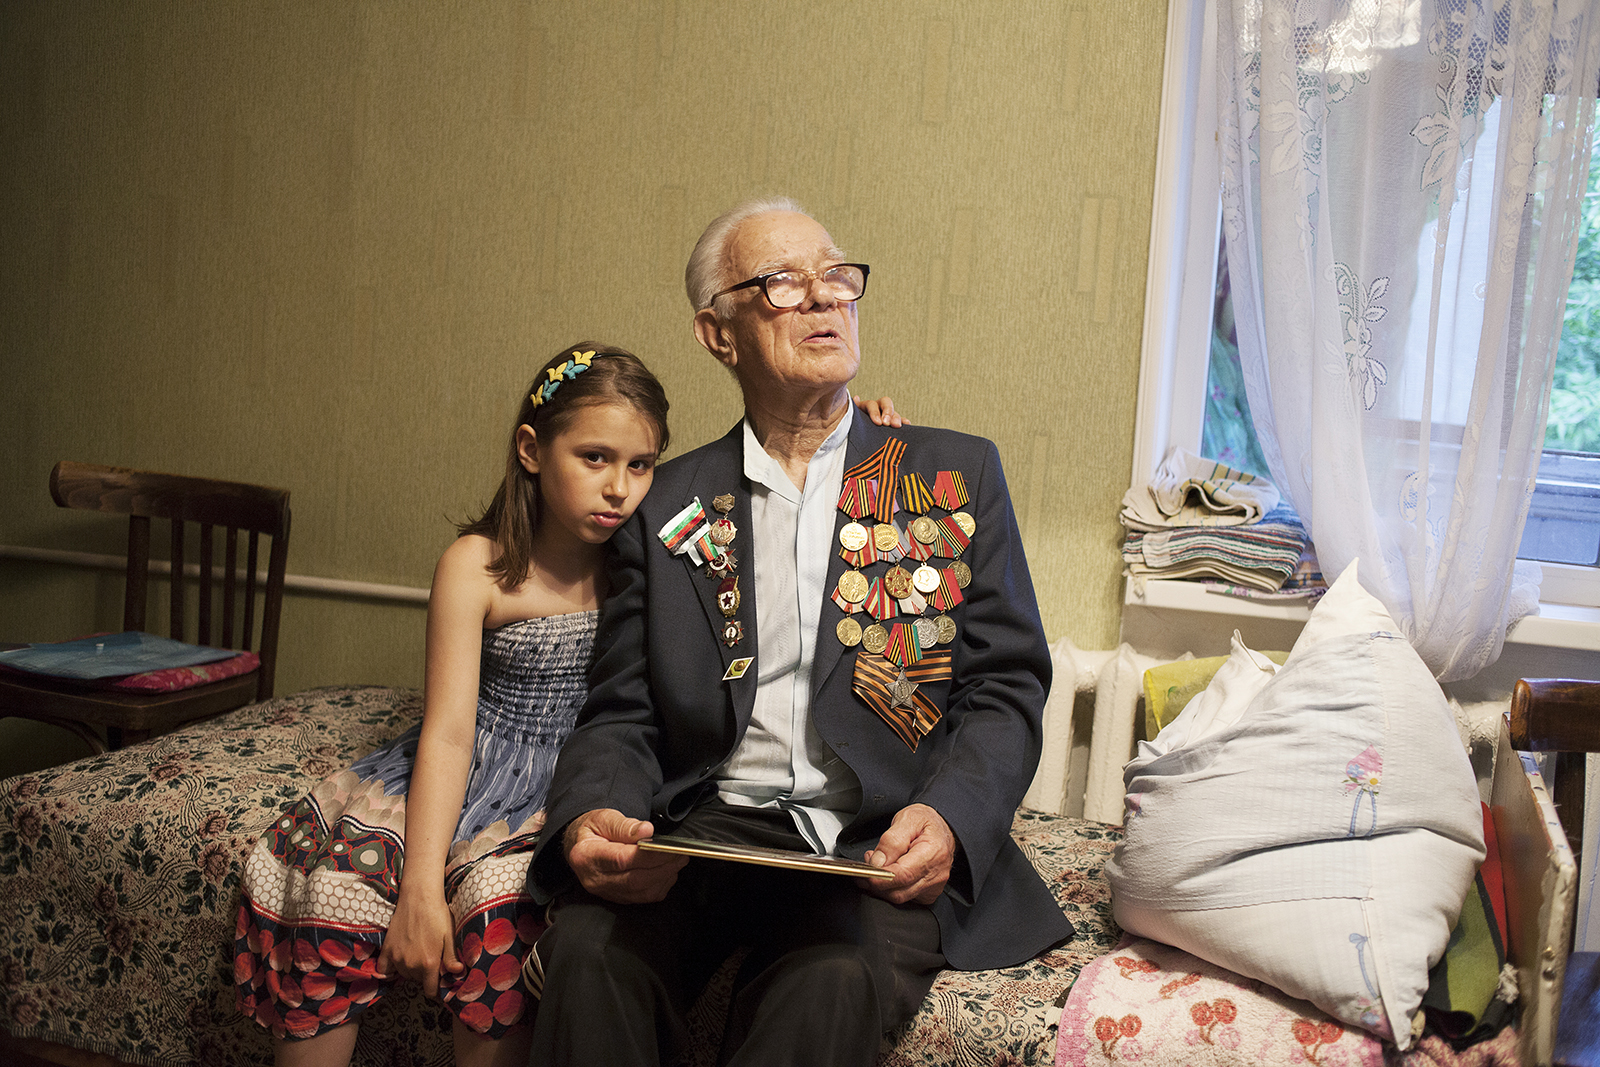 Veteran Fadejew Jakob Iwanowitsch with his granddaughter